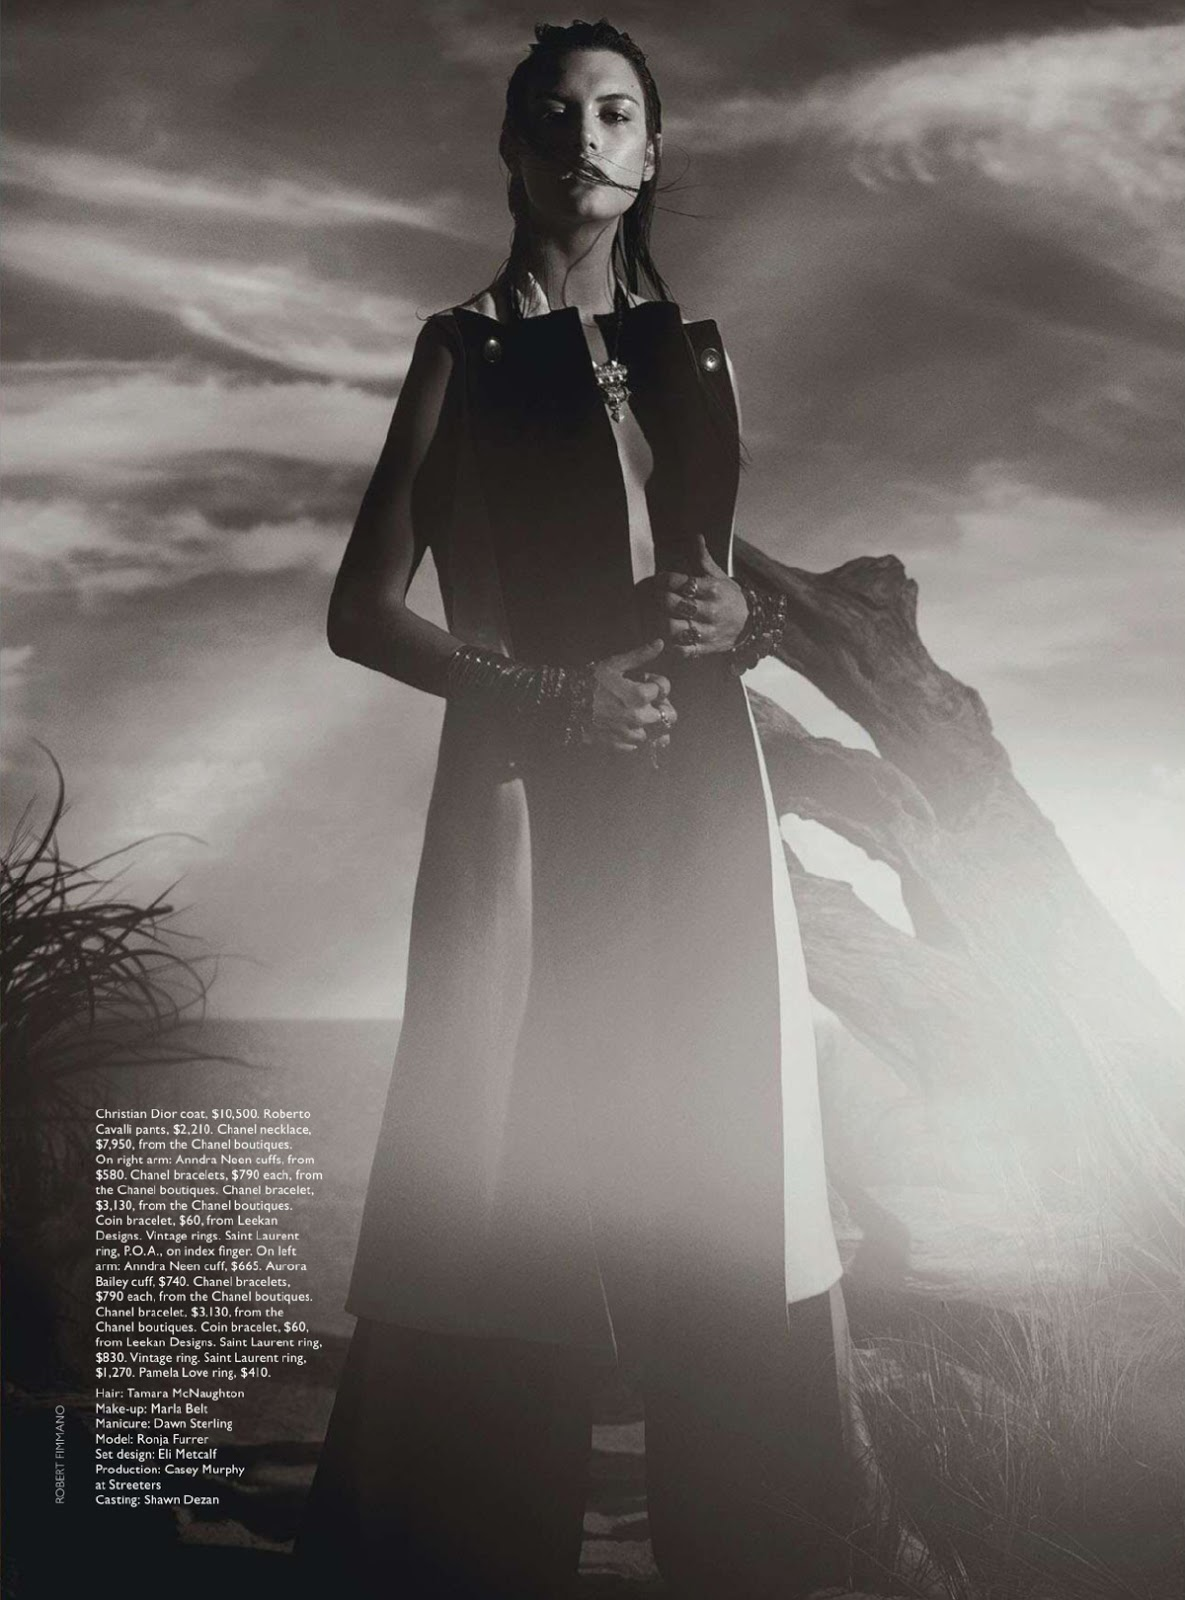 By Robbie Fimmano For Vogue Australia January 2015